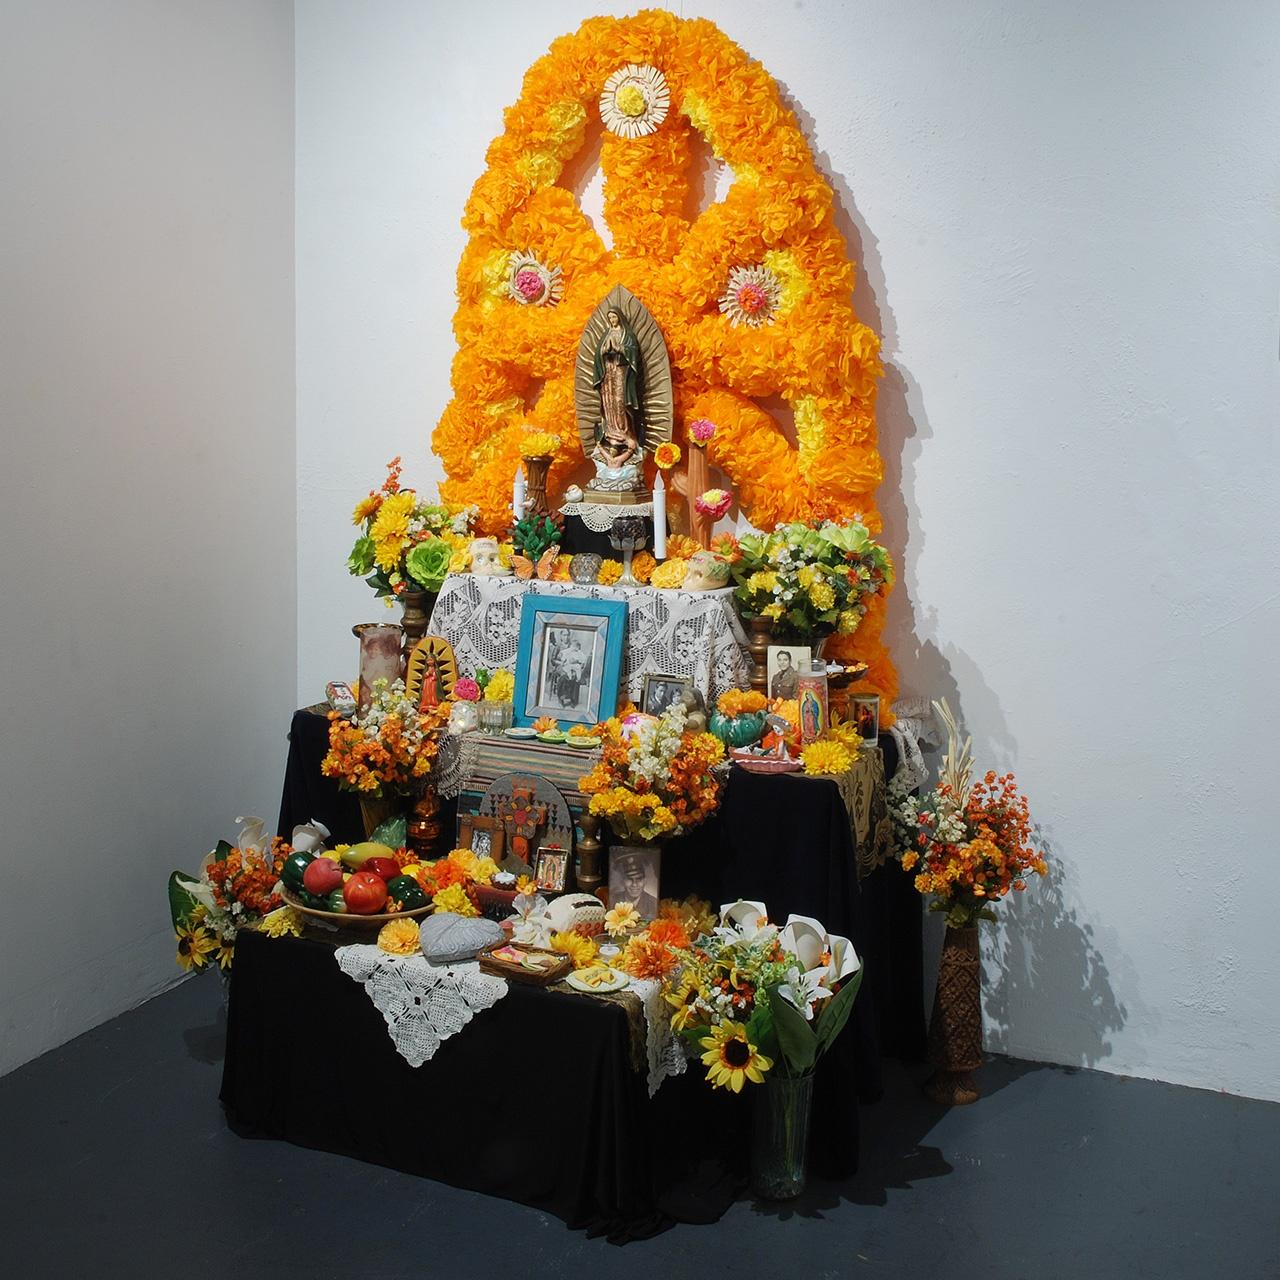 Objects, Borders and Neighbors, Ofelia Esparza, Altar